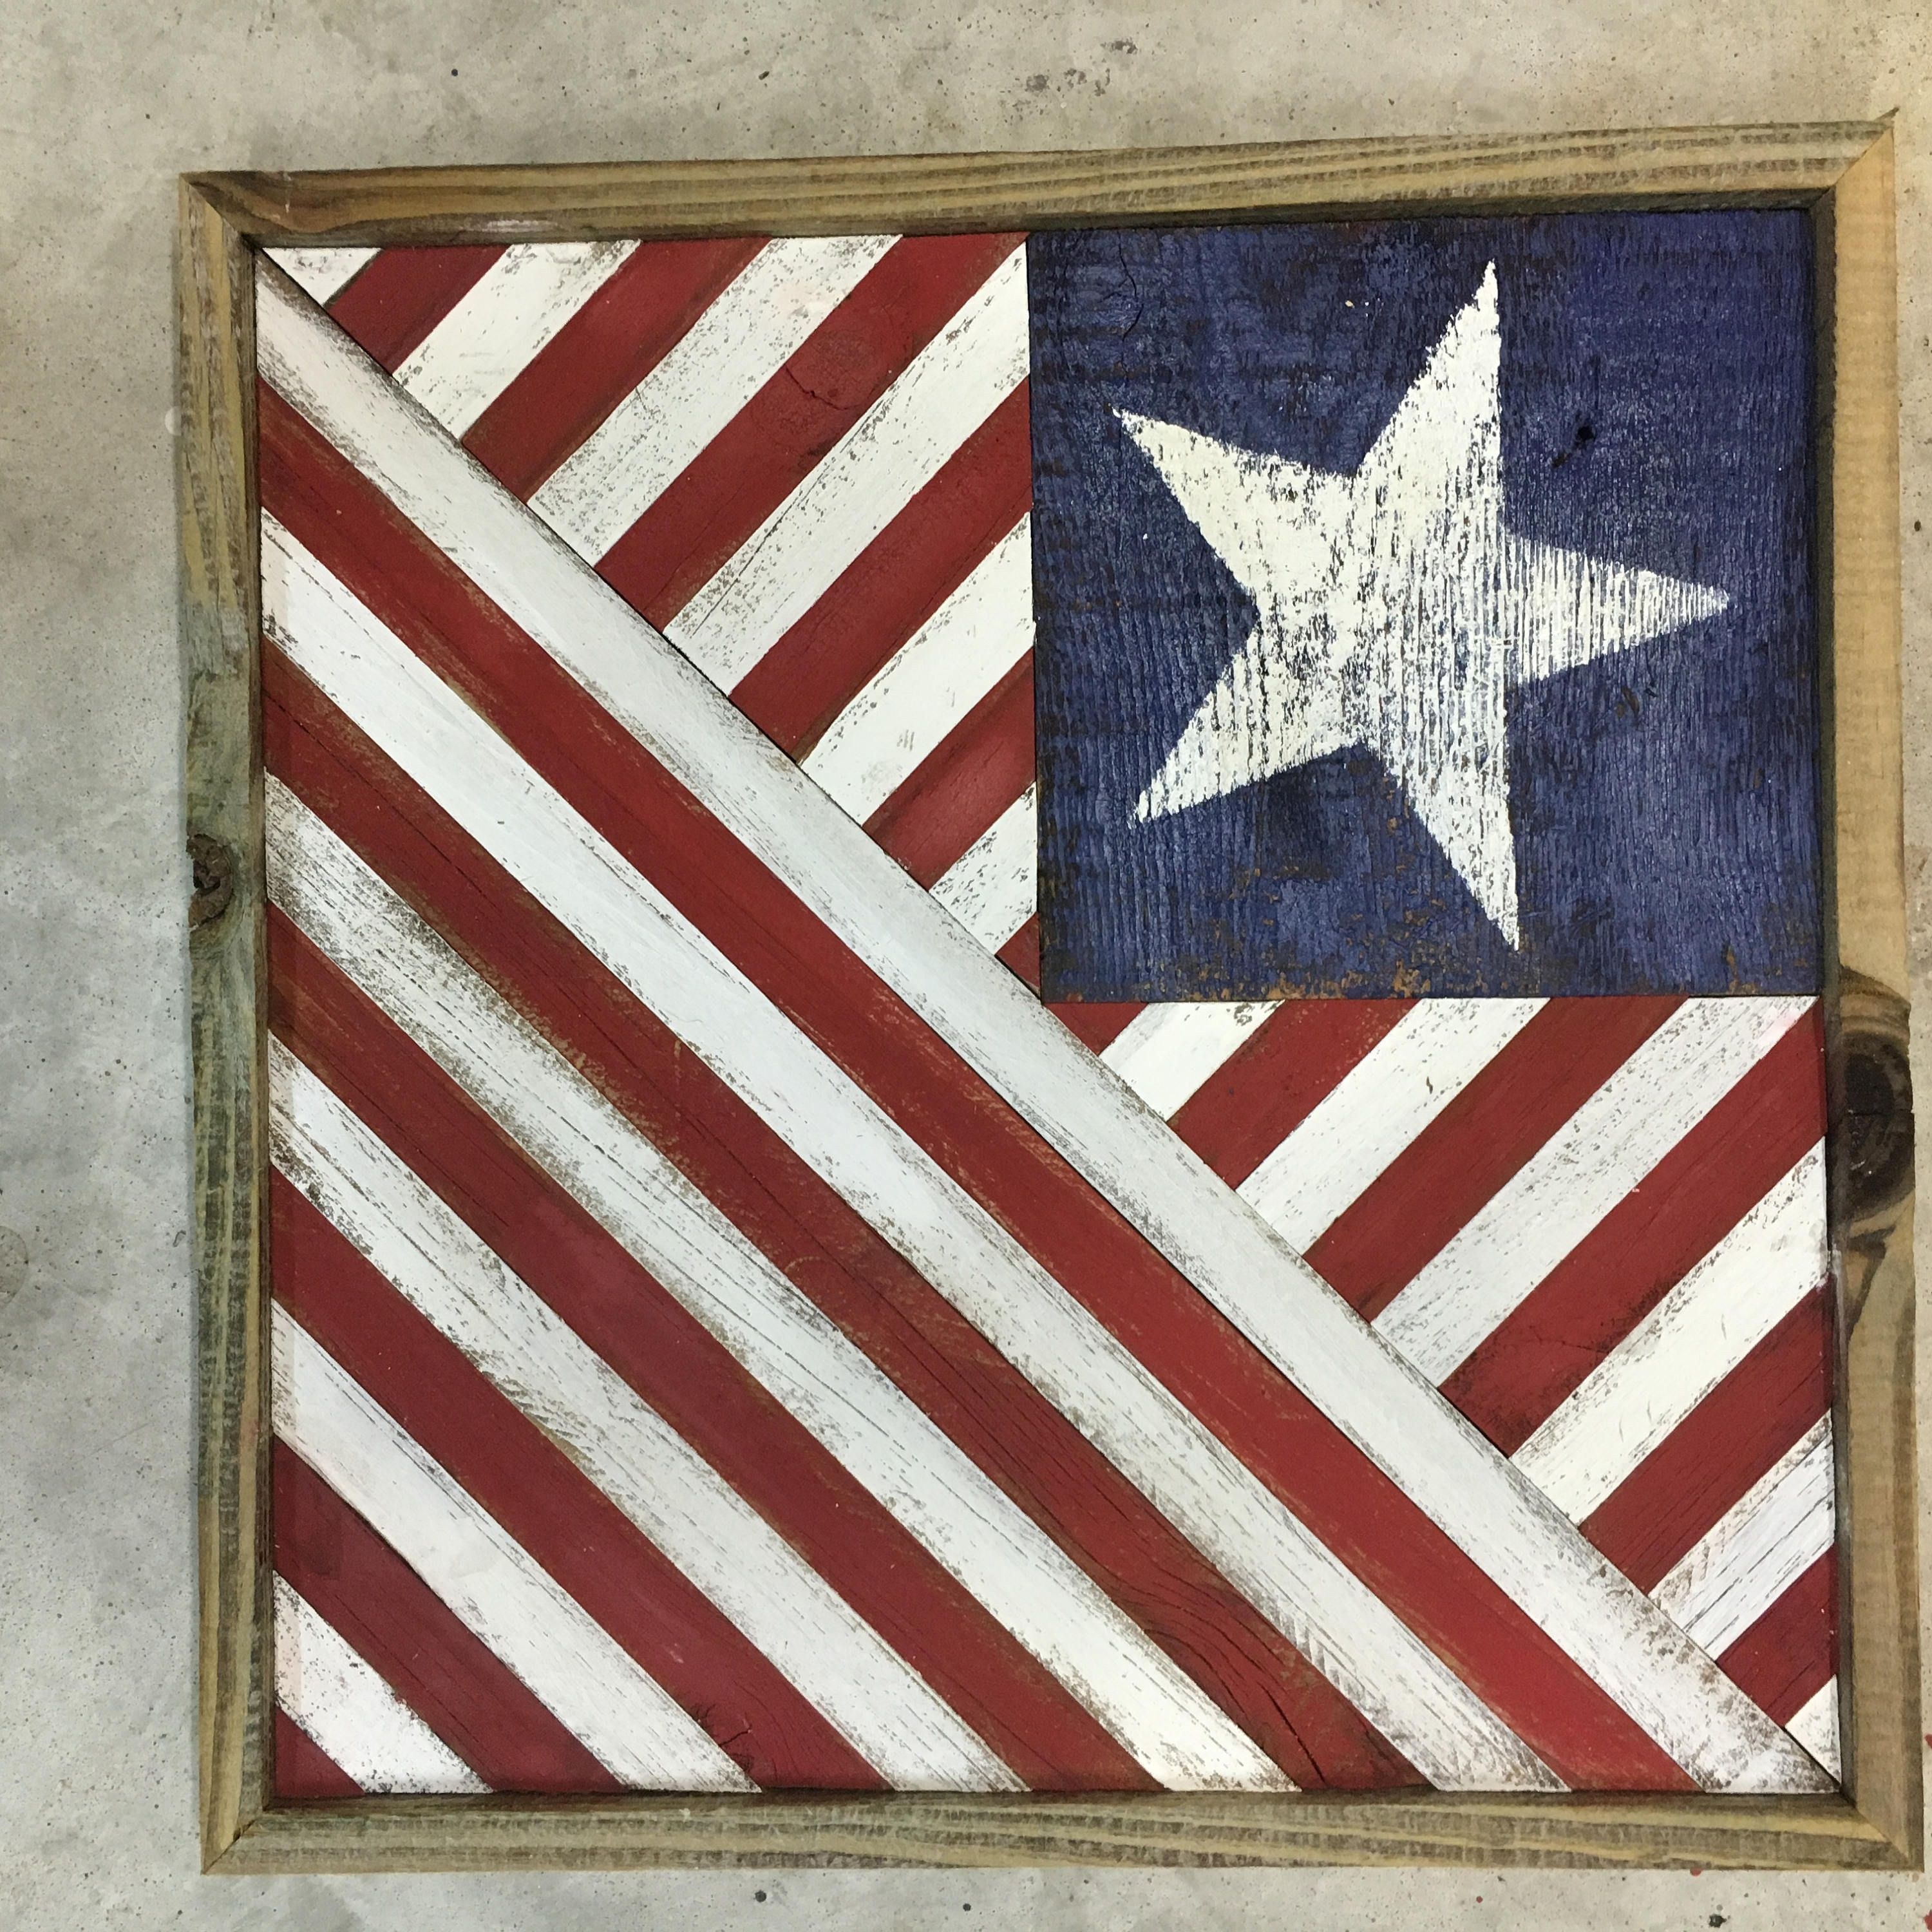 Rustic Reclaimed Wood Patriotic Wall Quilt Block By Dantedesignscrafts On Etsy Painted Barn Quilts Barn Quilt Patterns Barn Quilts